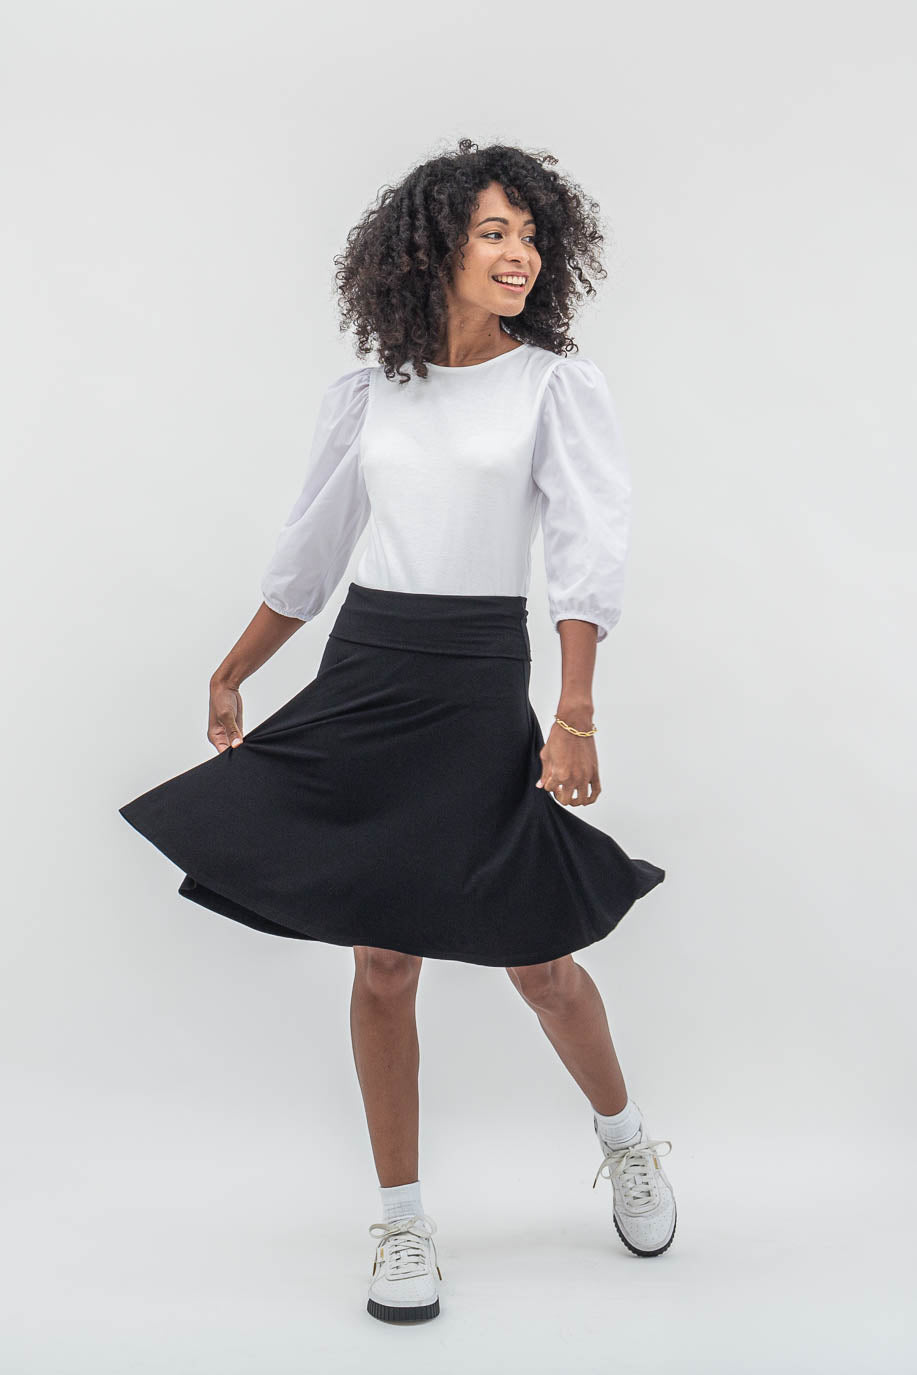 SF Foldover Black/ Navy Skirt - Sarah Feldman Modest Clothing